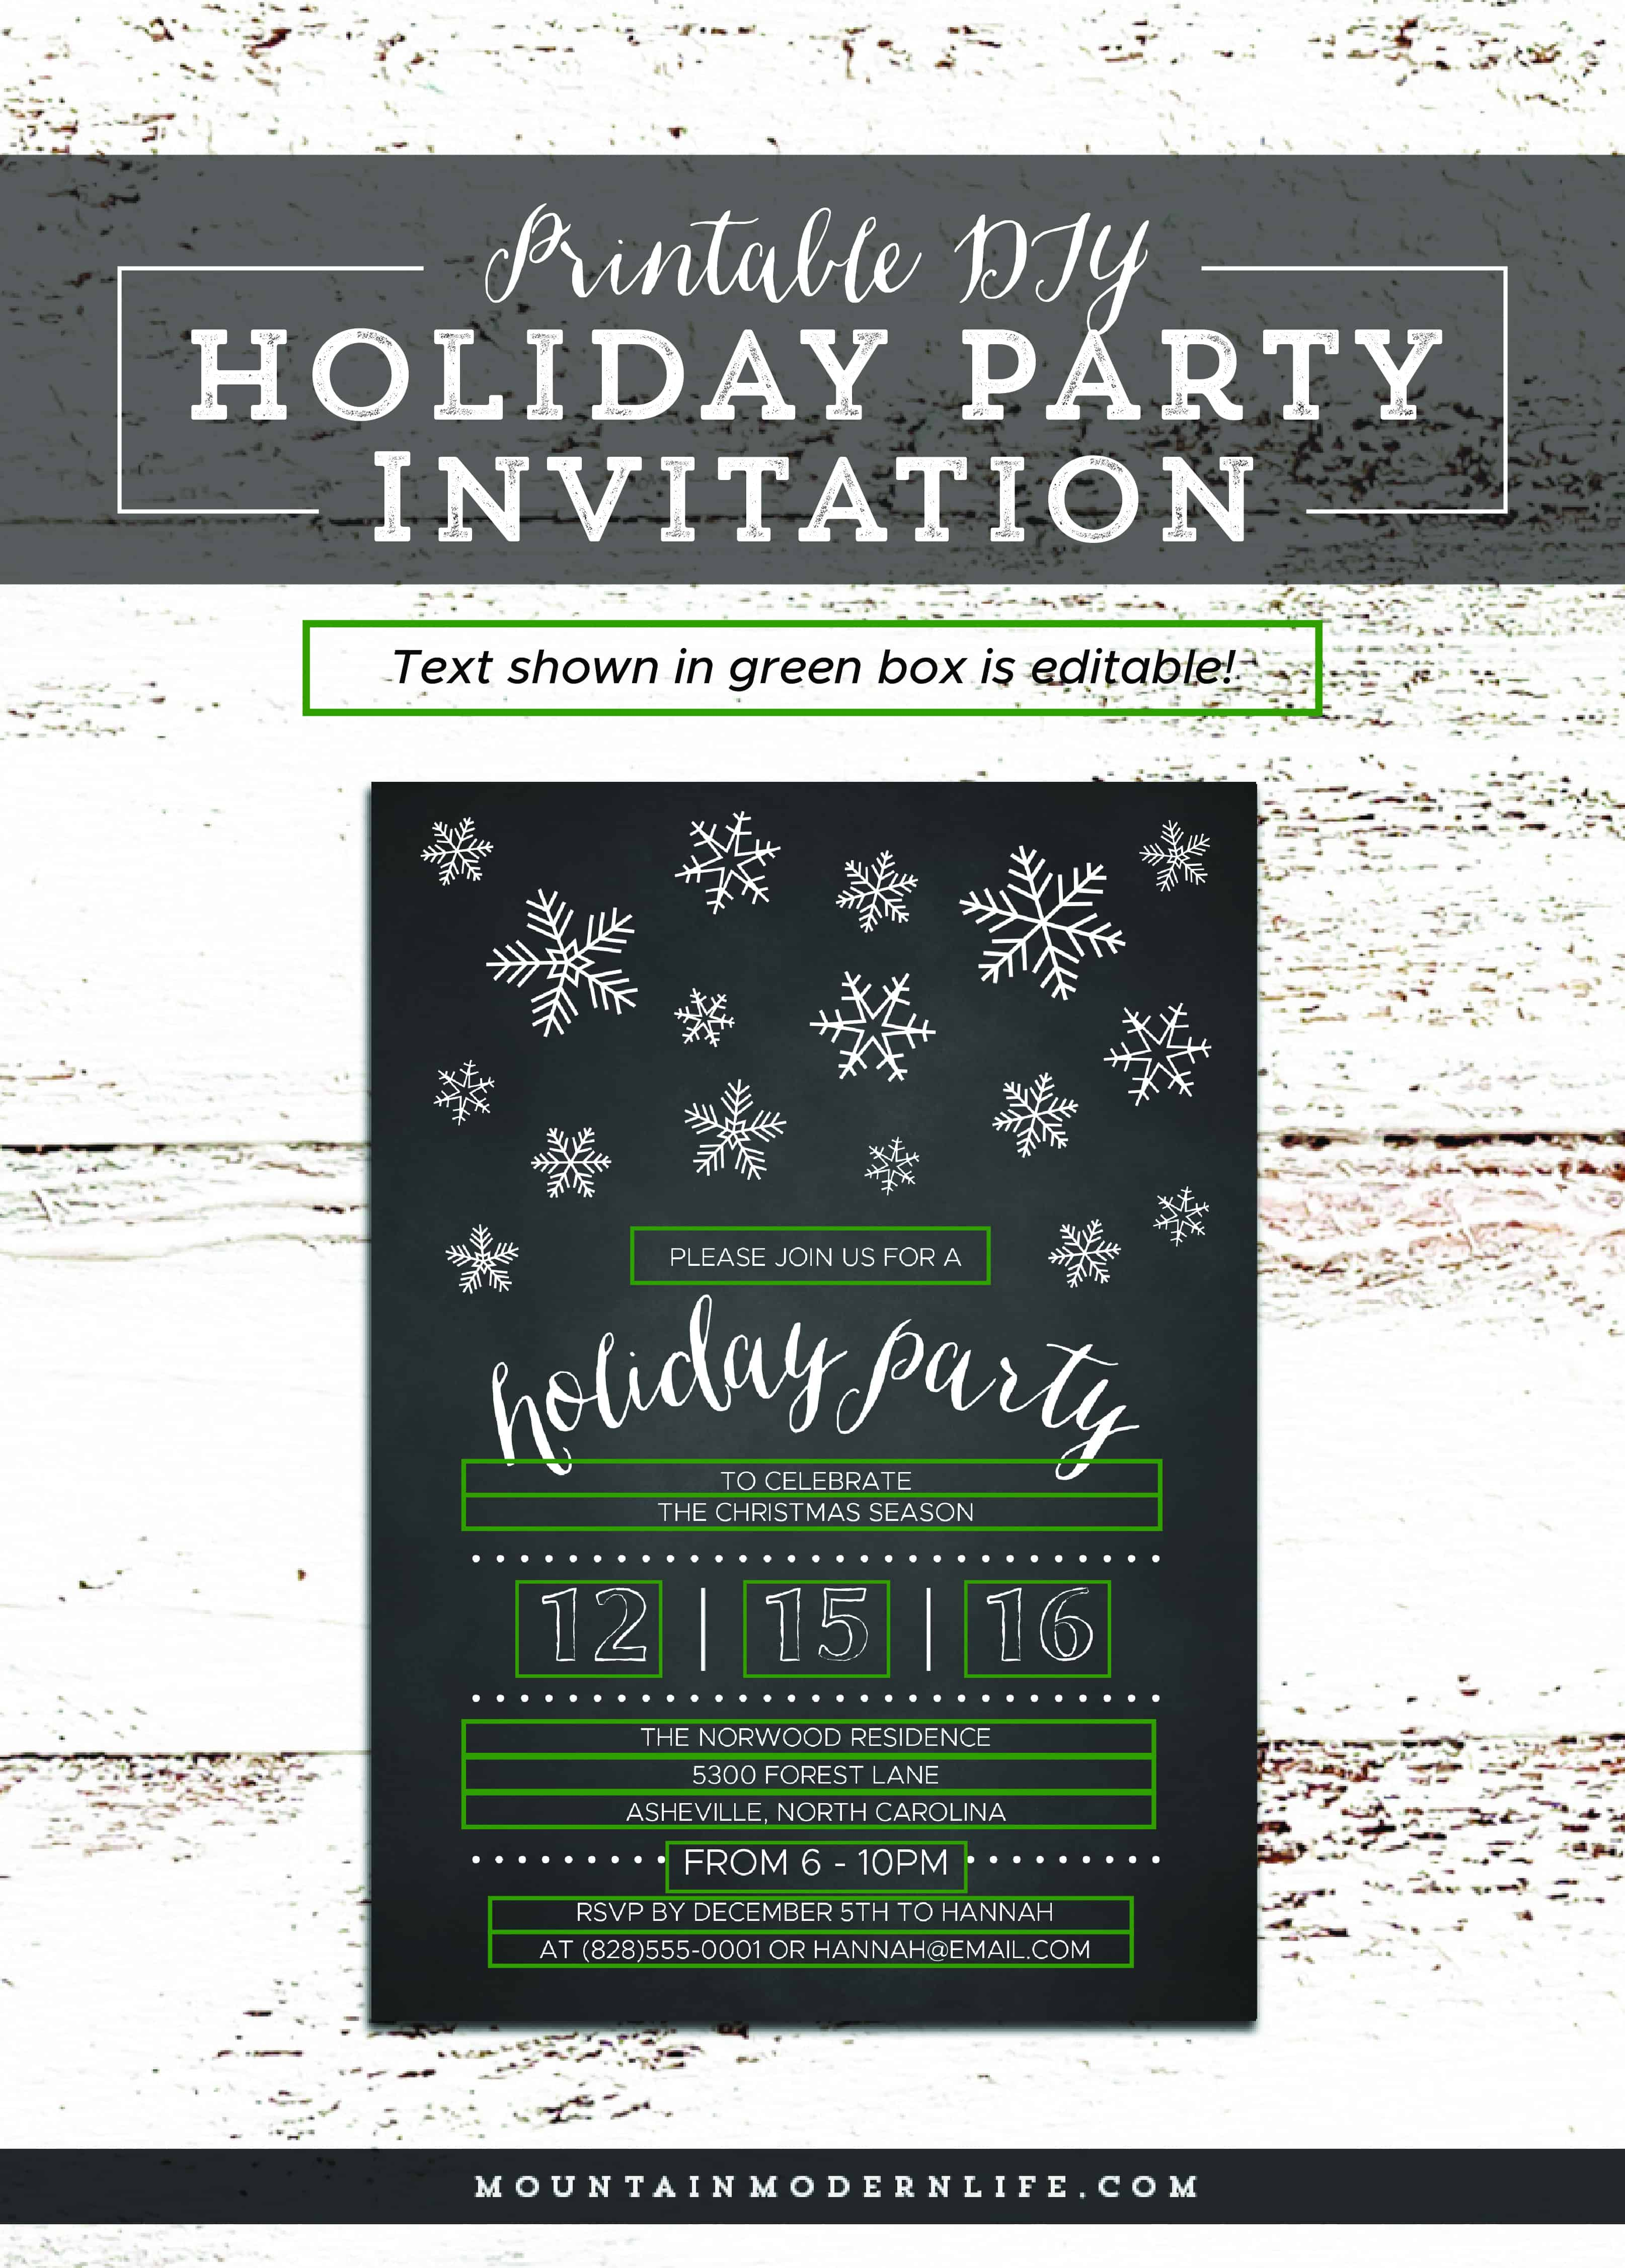 DIY Holiday Party Invitation | MountainModernLife.com